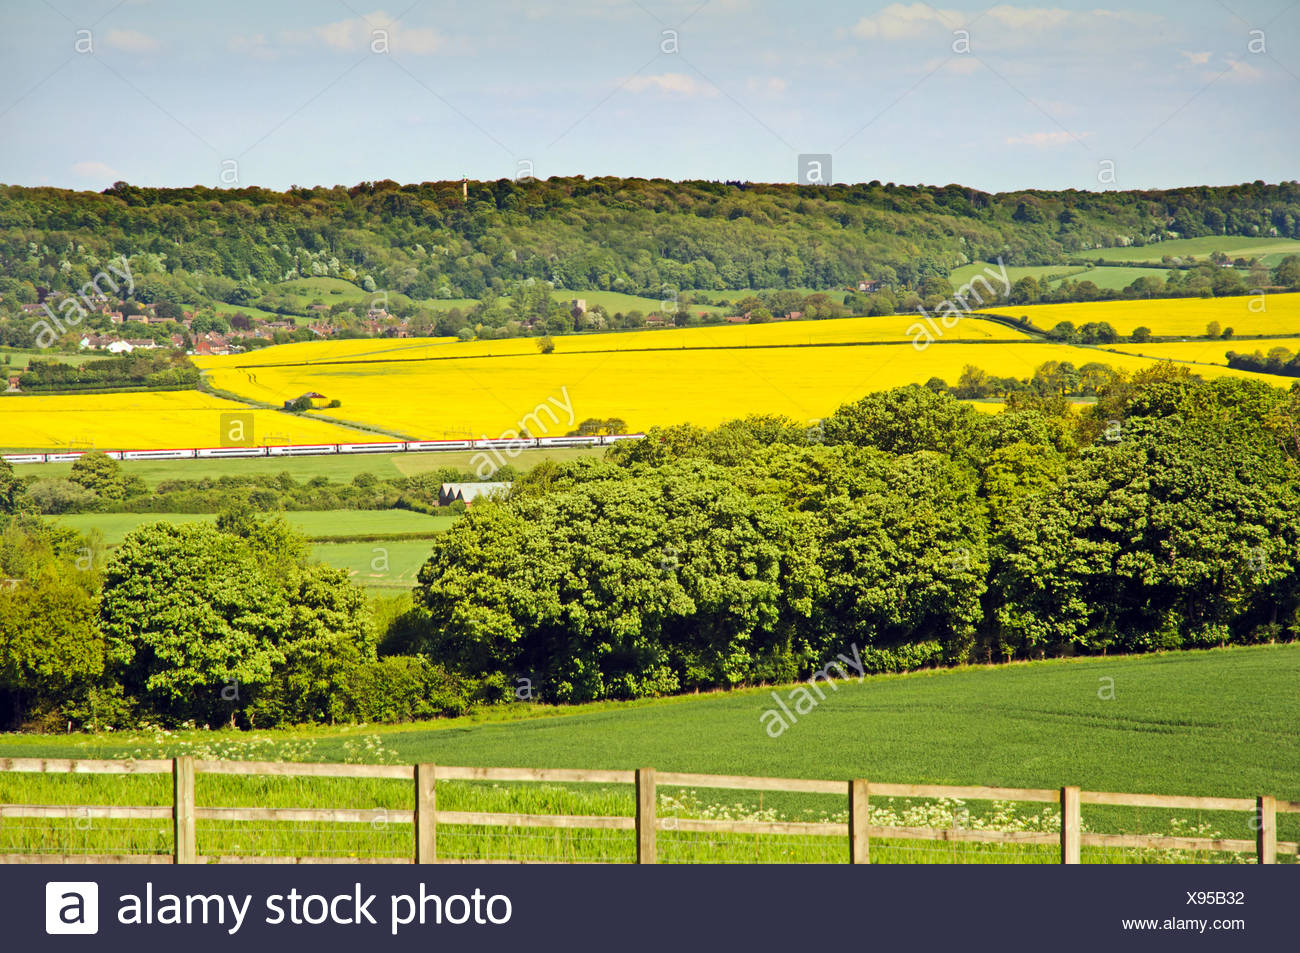 A train runs through Chiltern countryside in Sprin - Stock Image